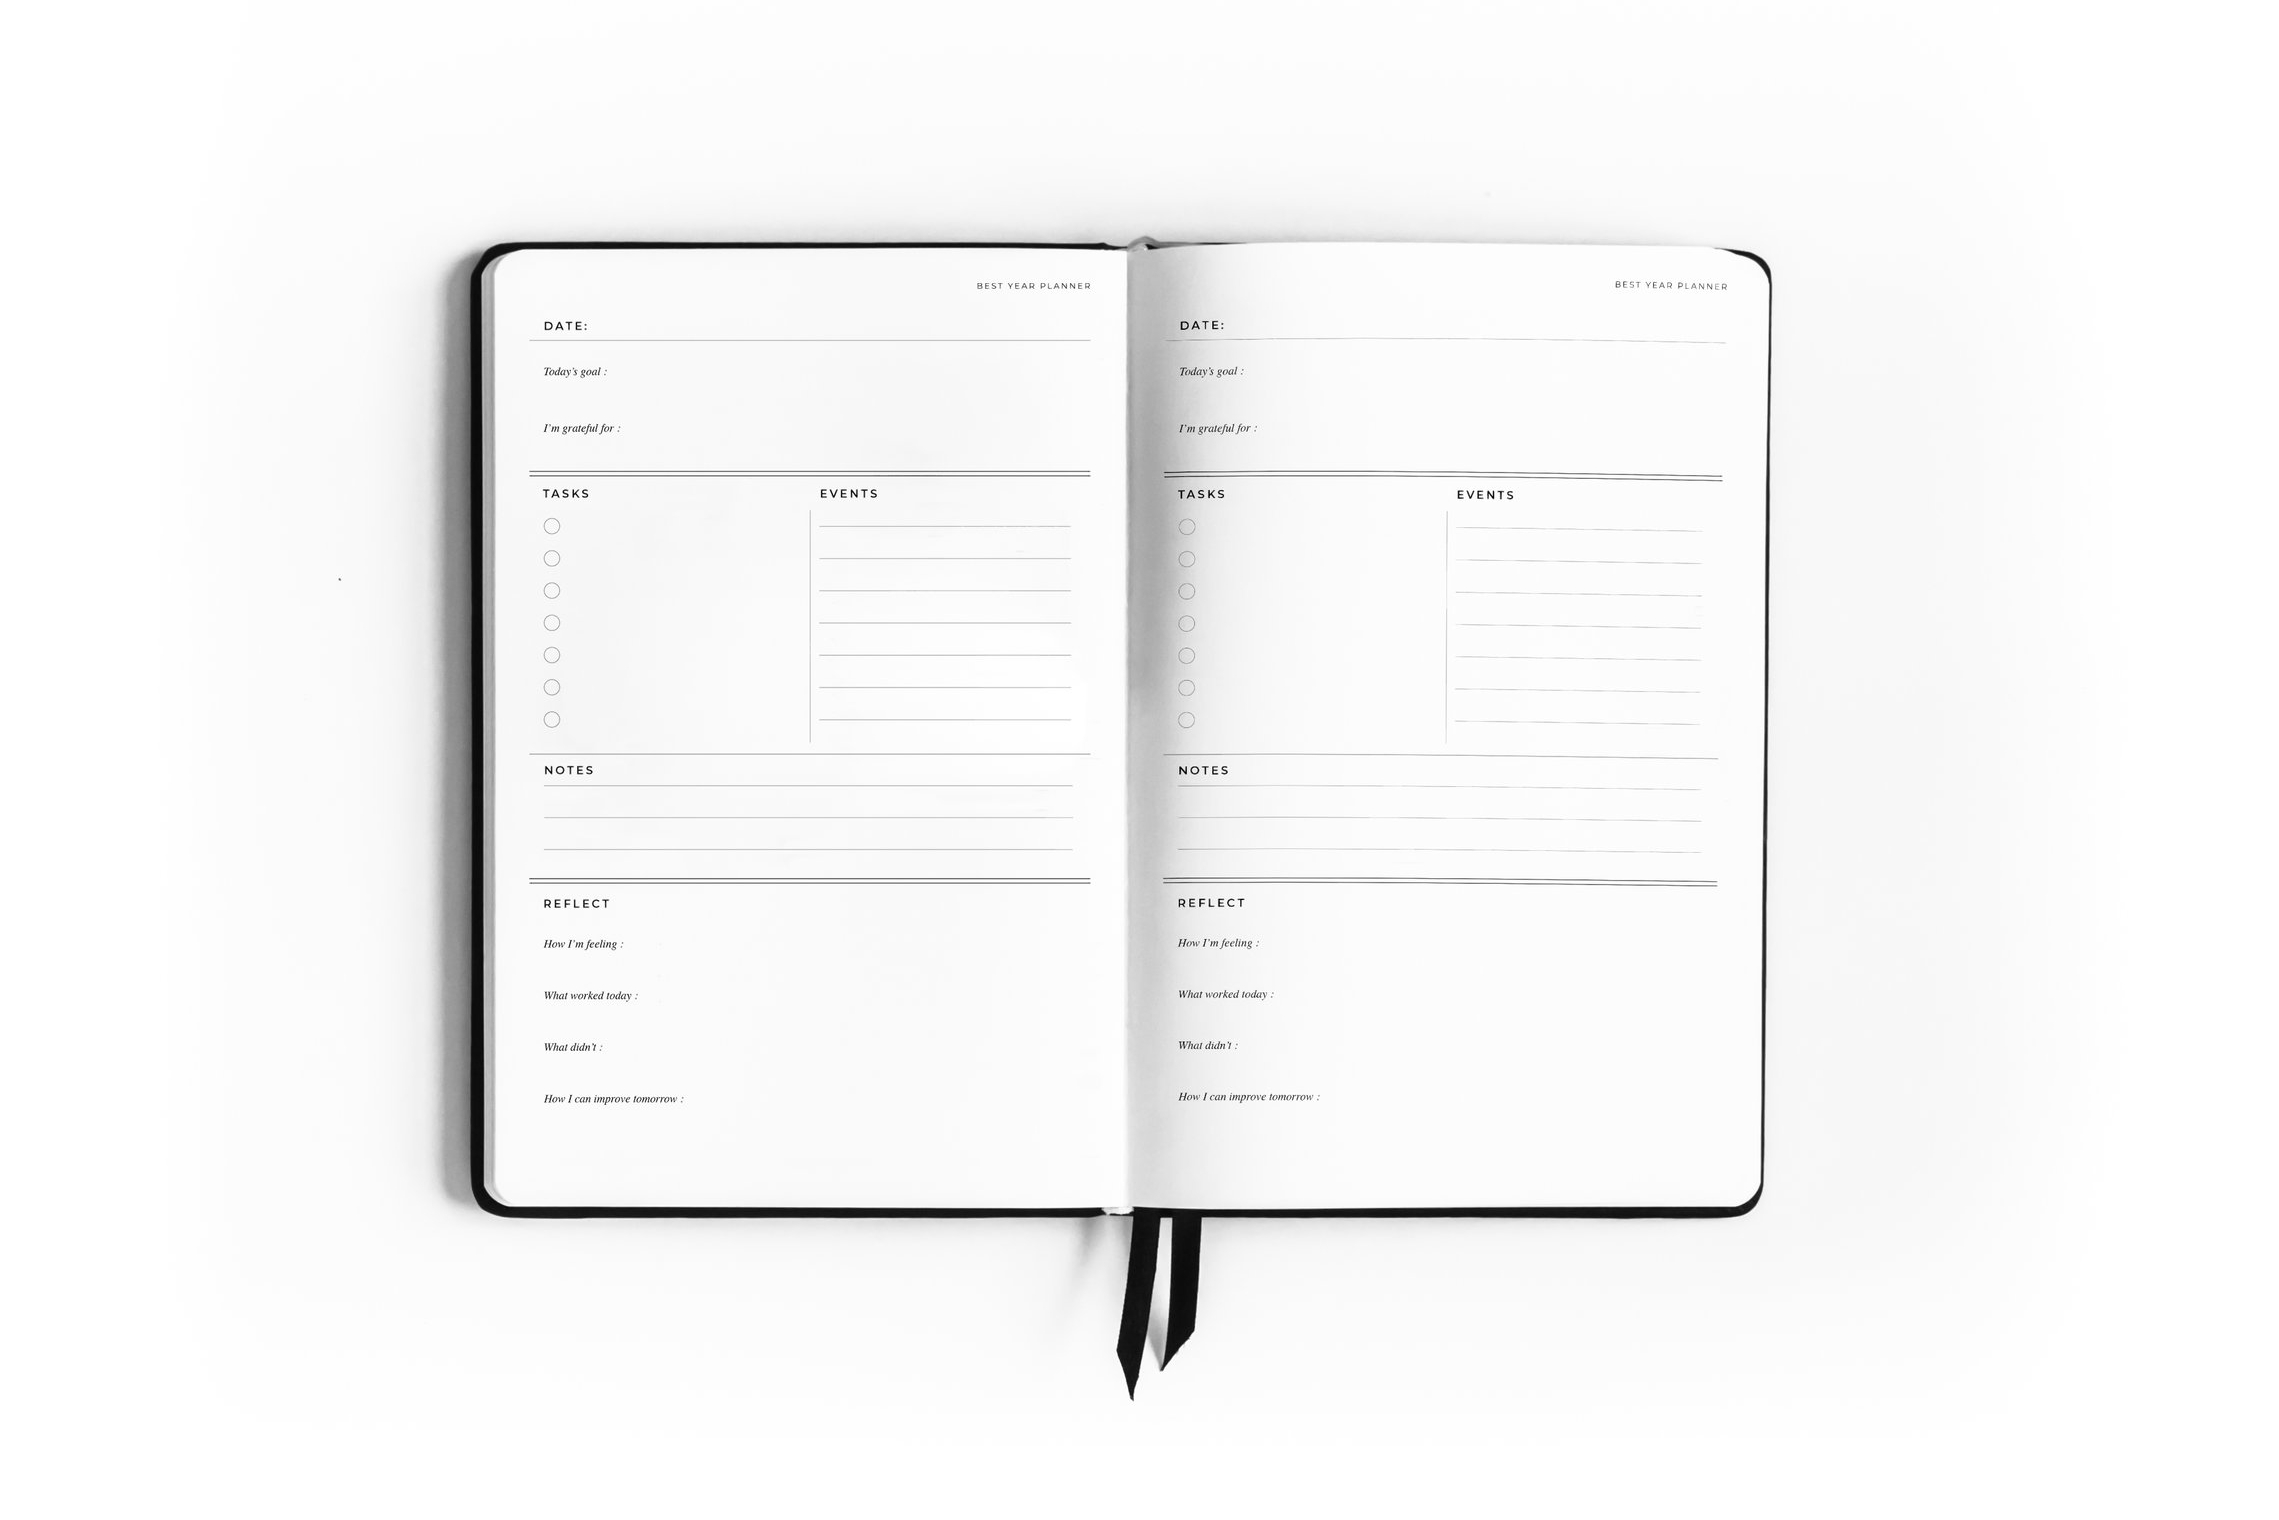 Planning-Pages-1.jpg